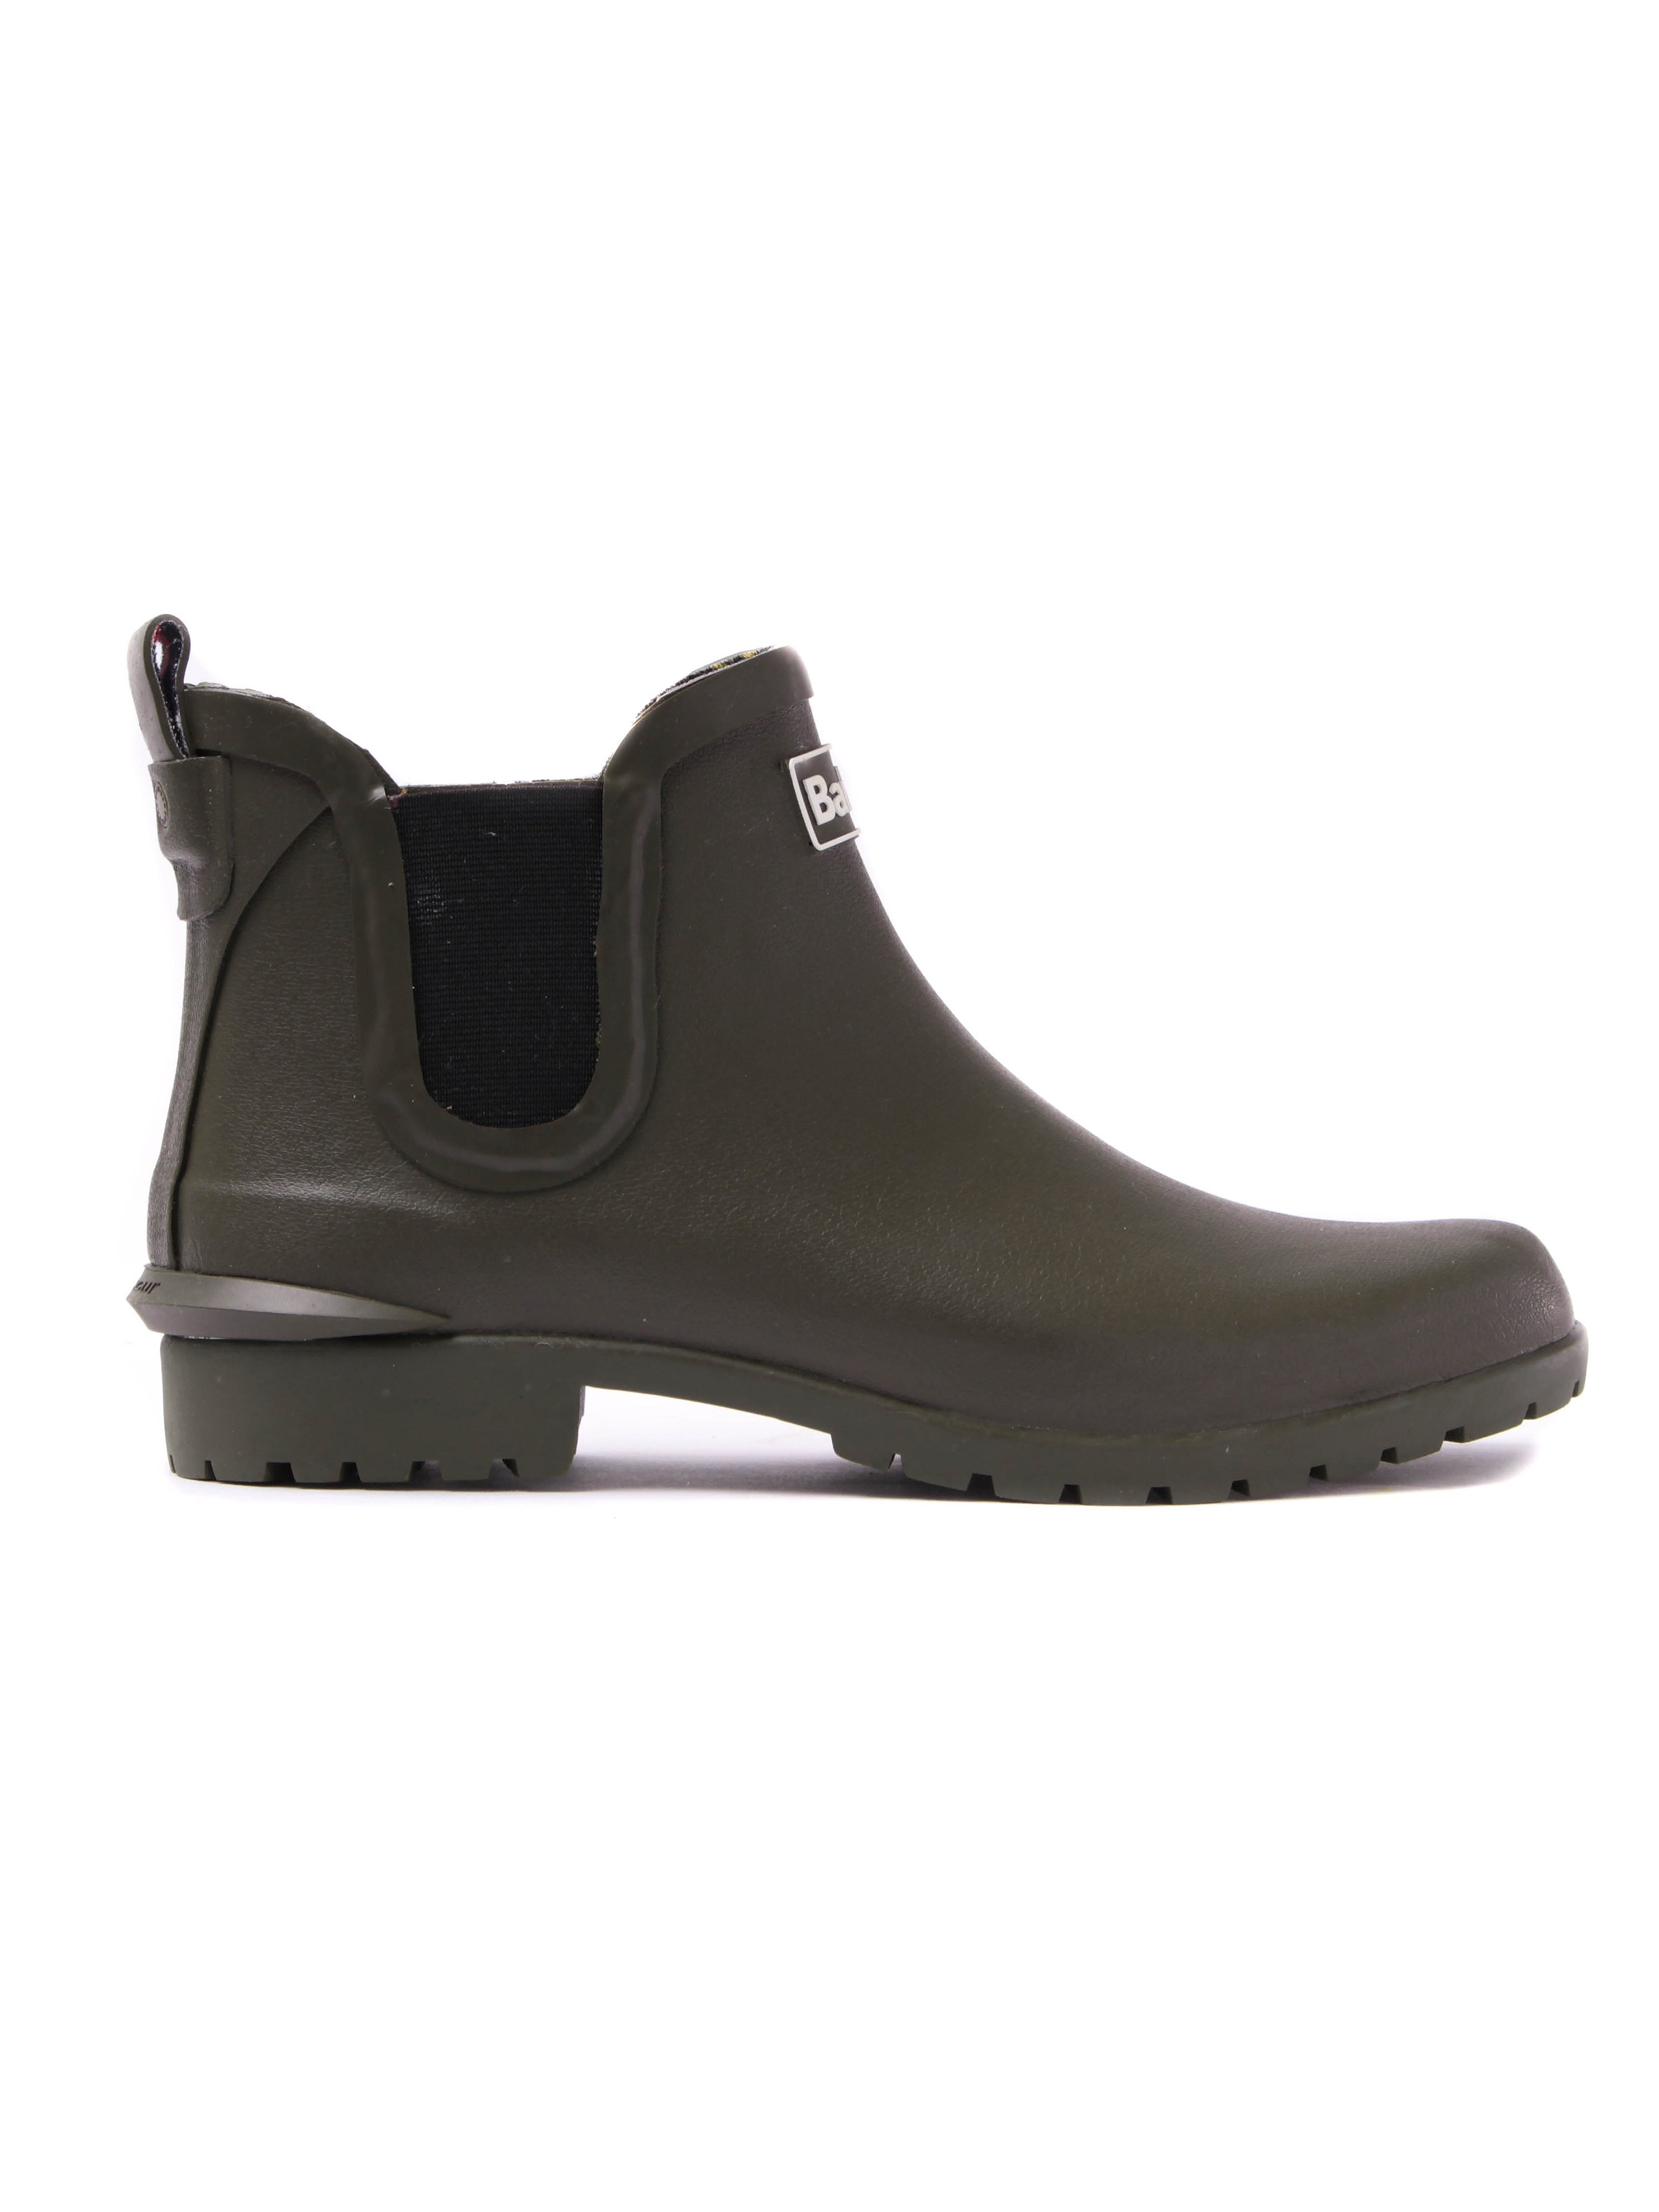 Barbour Women's Wilton Rubber Wellington Ankle Boot - Olive